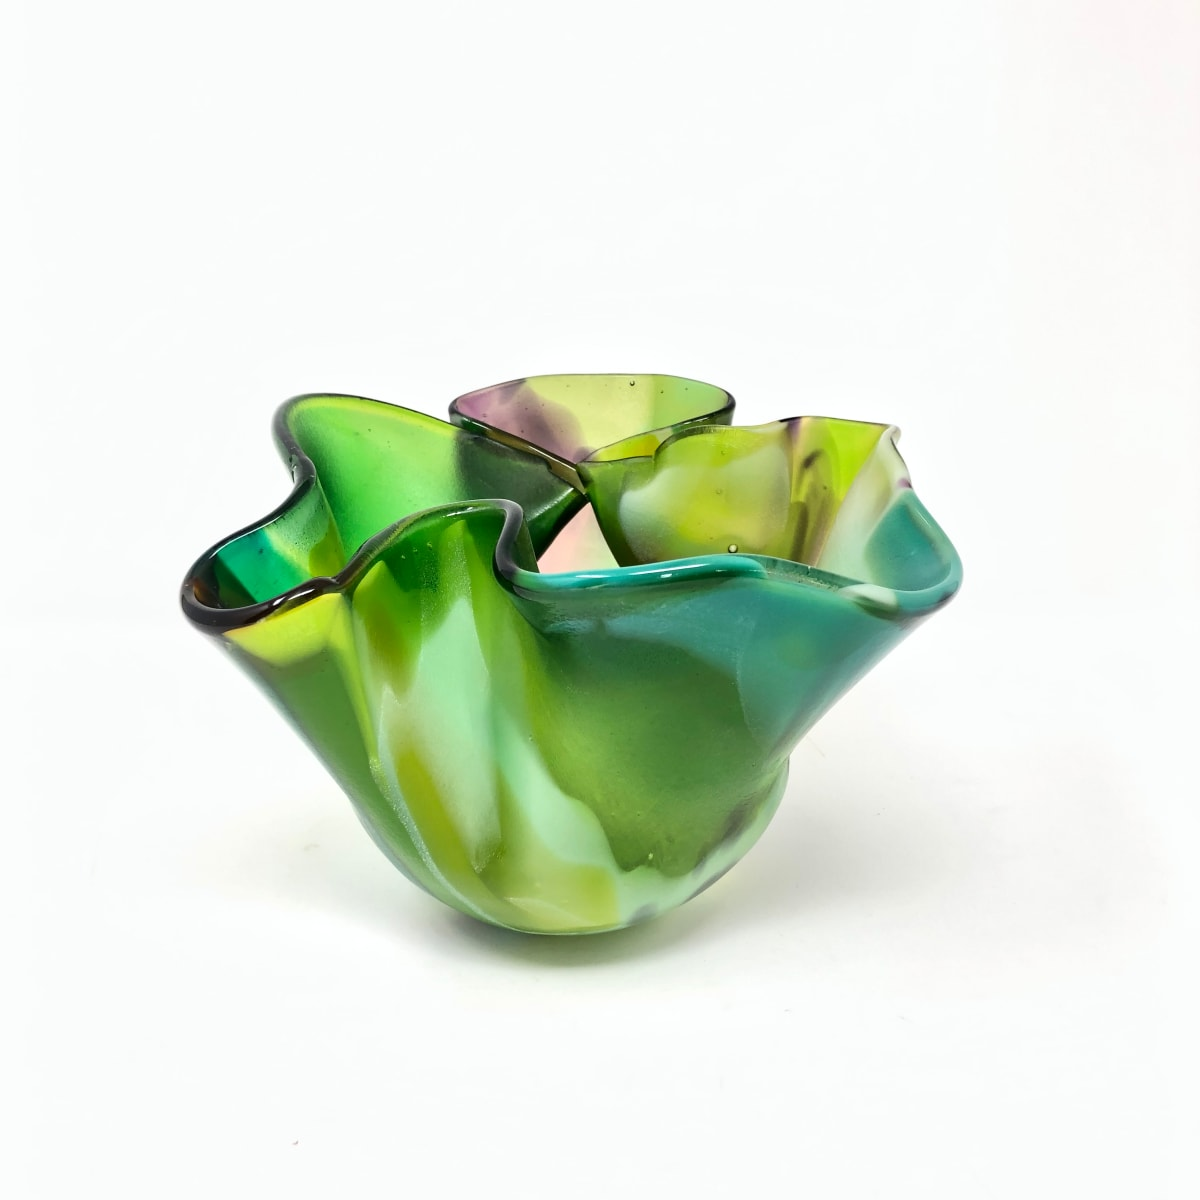 SHI300, Green Squeeze and Fold Vase by Hilary Shields